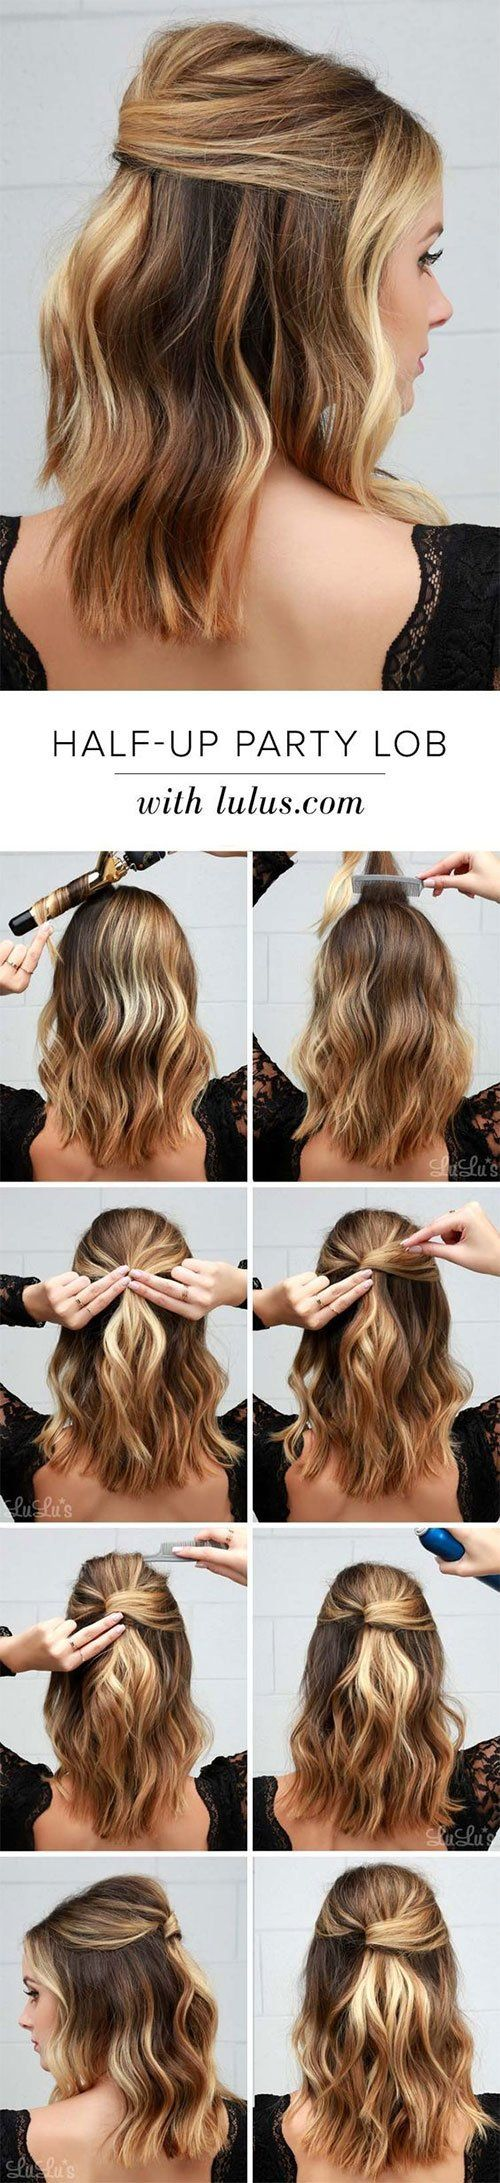 Half up hairstyle tutorials for short hair hacks tutorials short half up hairstyle tutorials solutioingenieria Image collections